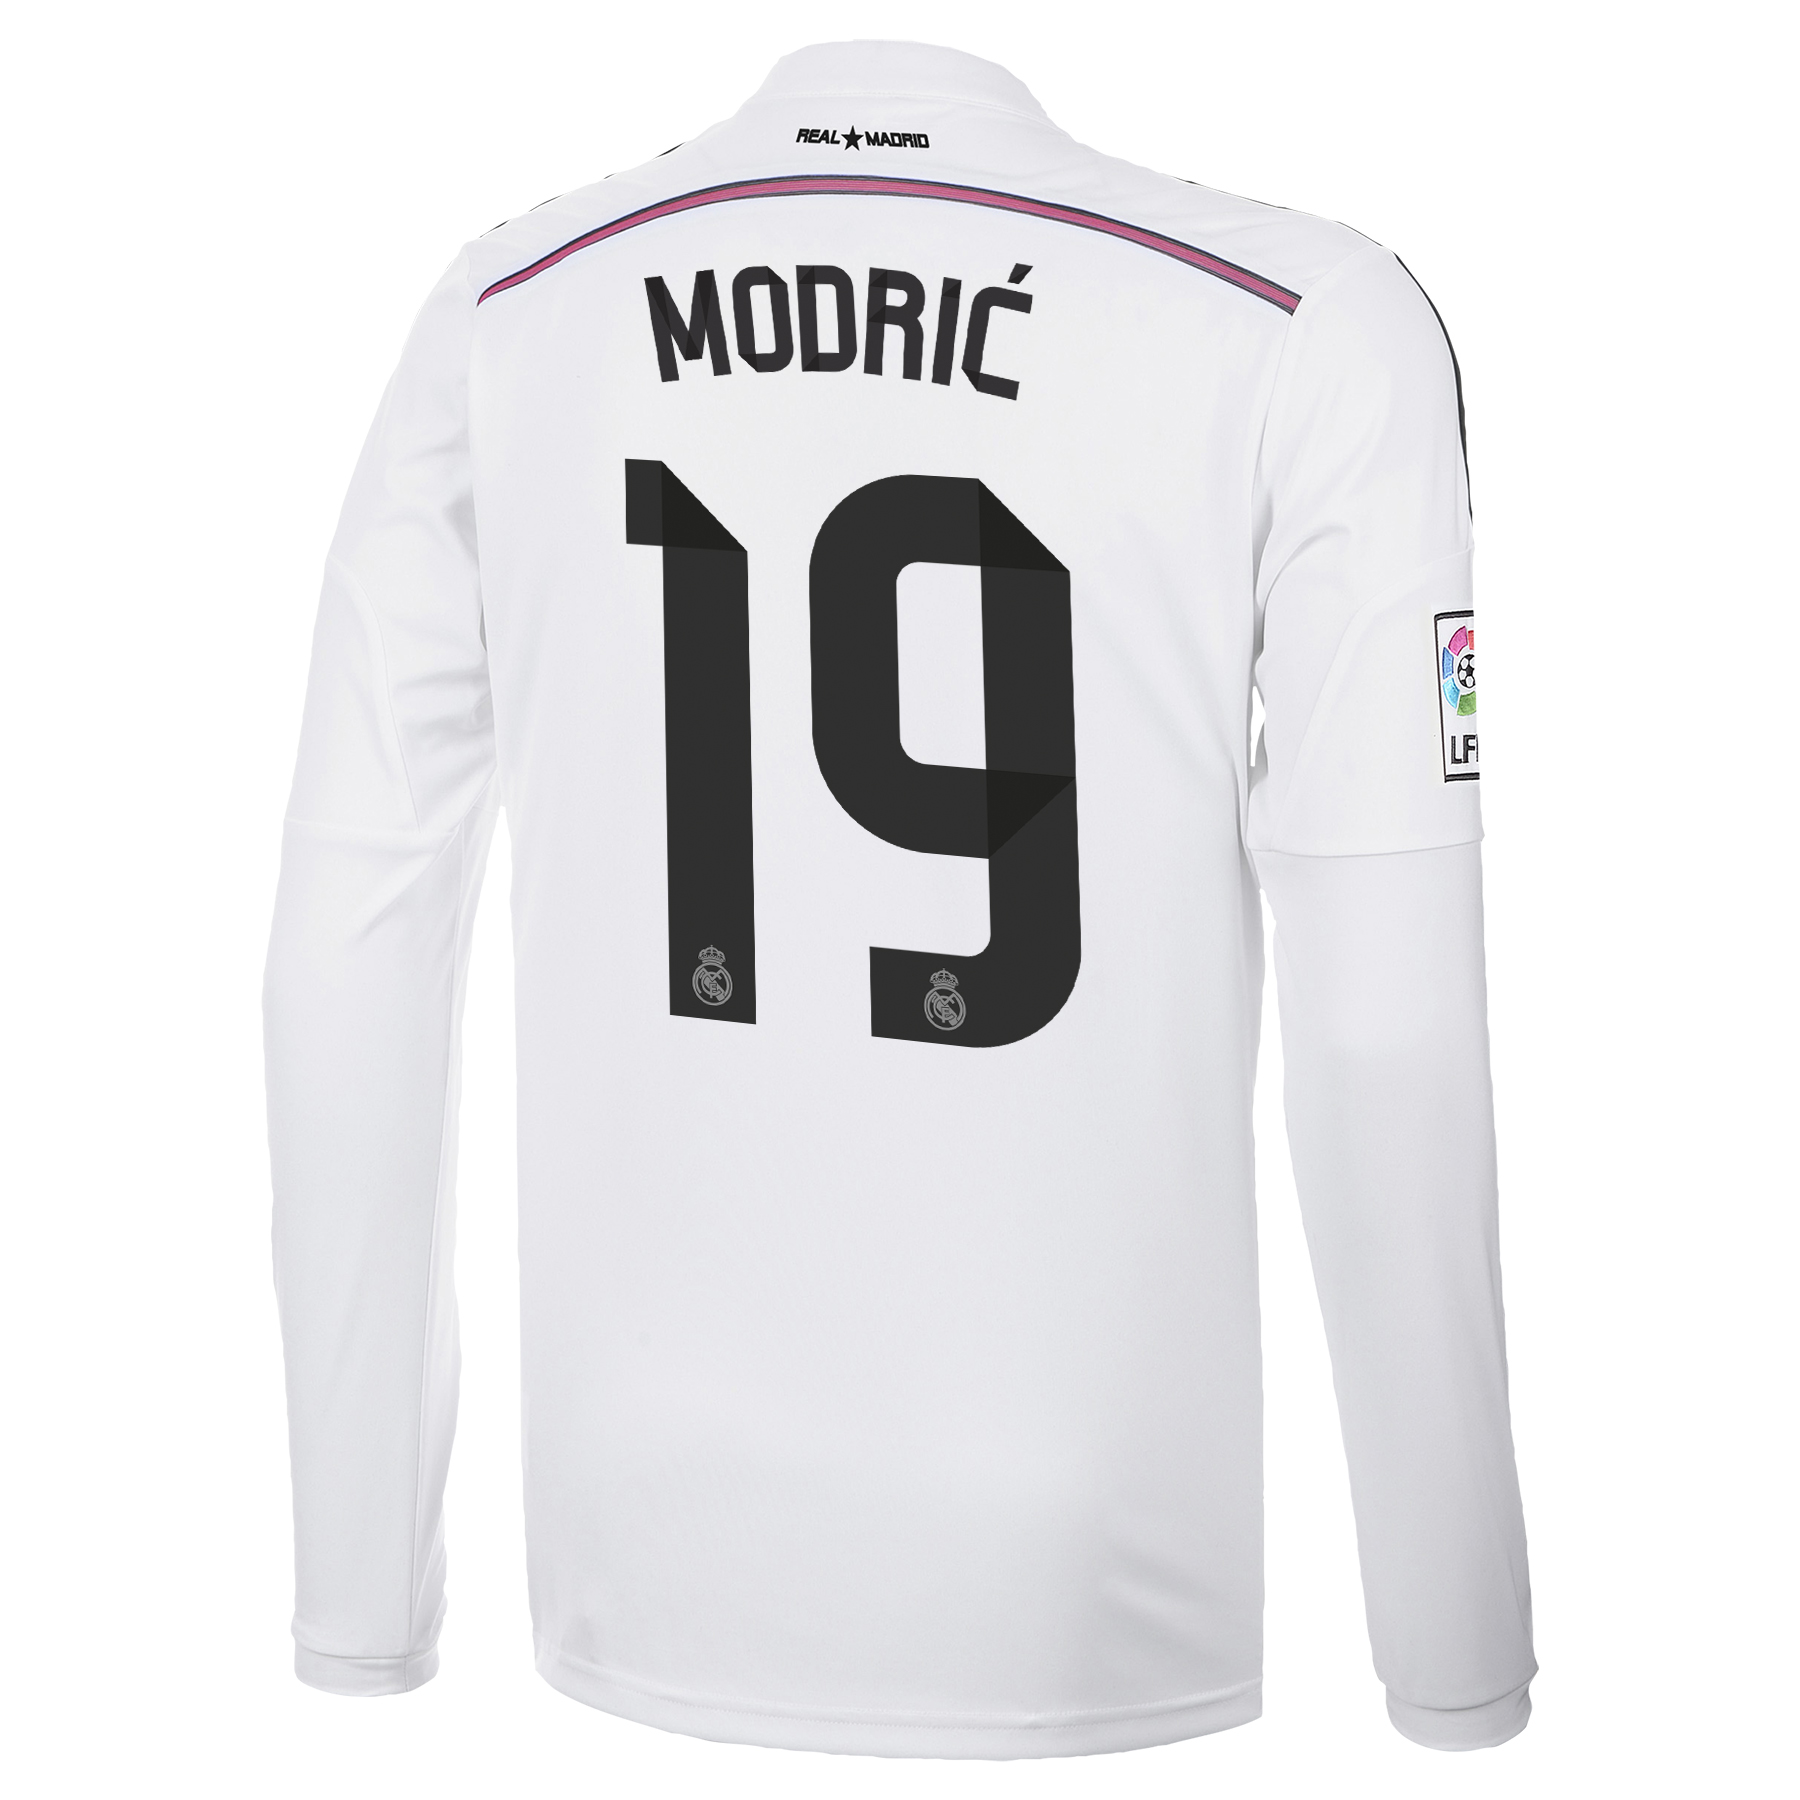 Real Madrid Home Shirt 2014/15 Long Sleeve with Modric 19 printing